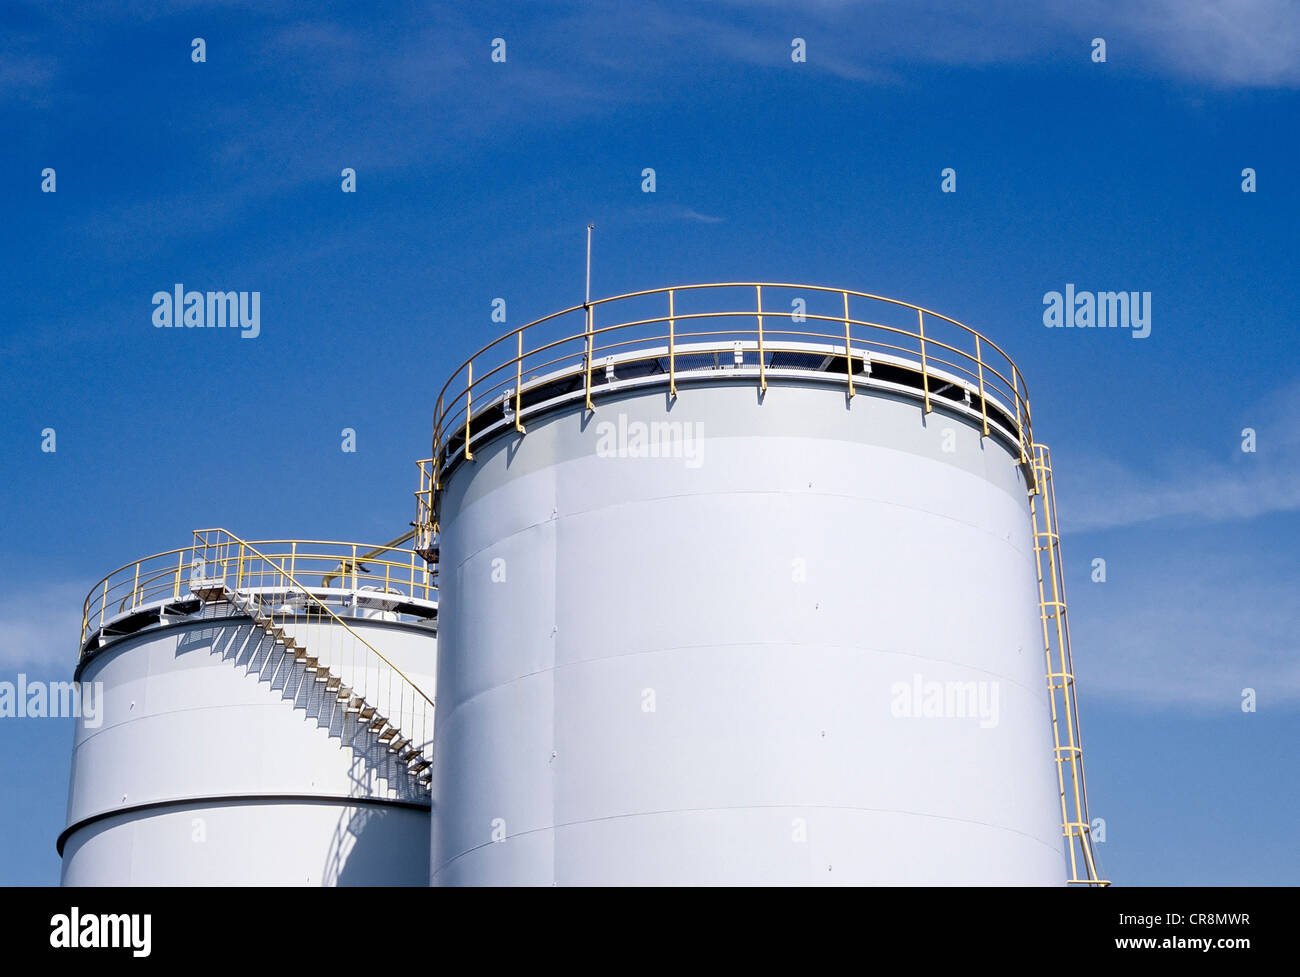 Two tanks containing hydrochloric acid, Chempark Krefeld-Uerdingen industrial park, formerly known as Bayer Industry - Stock Image